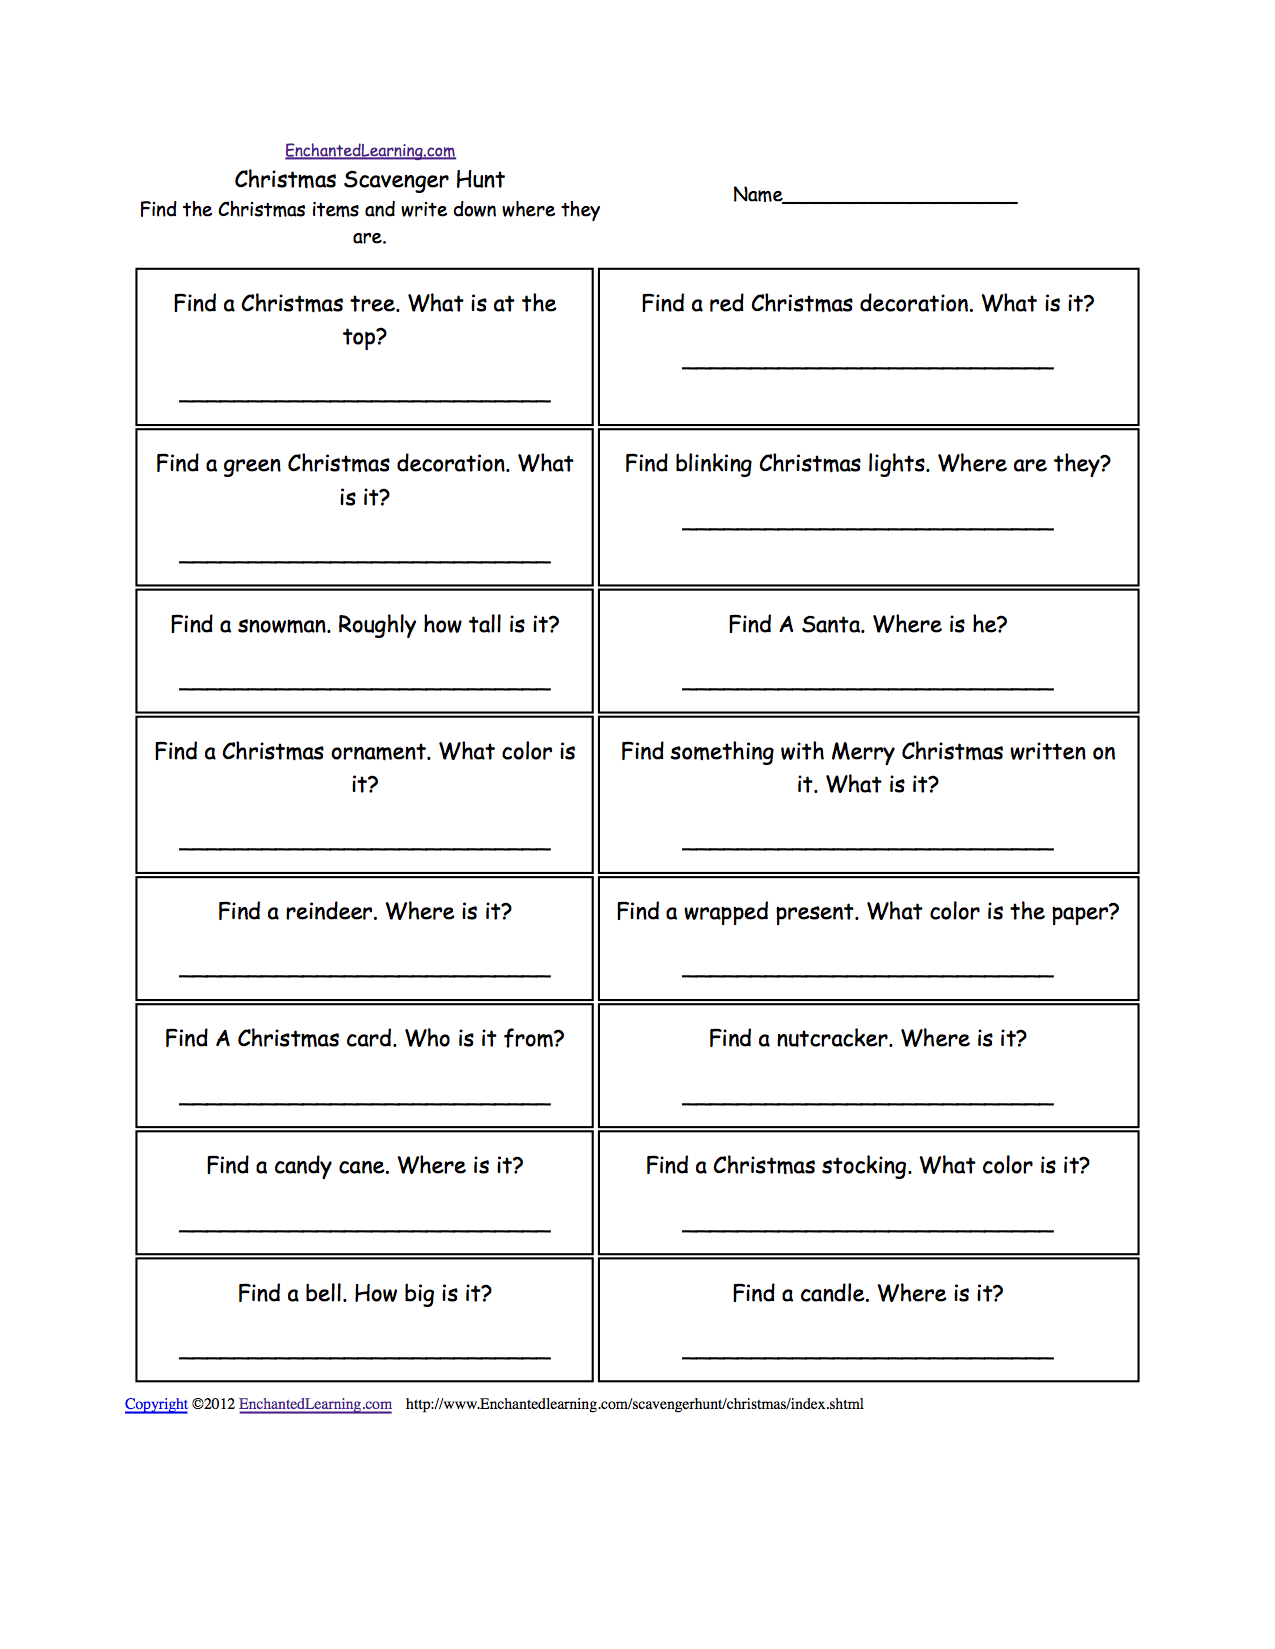 Worksheets Christmas Writing Worksheets christmas activities writing worksheets enchantedlearning com scavenger hunt hunt